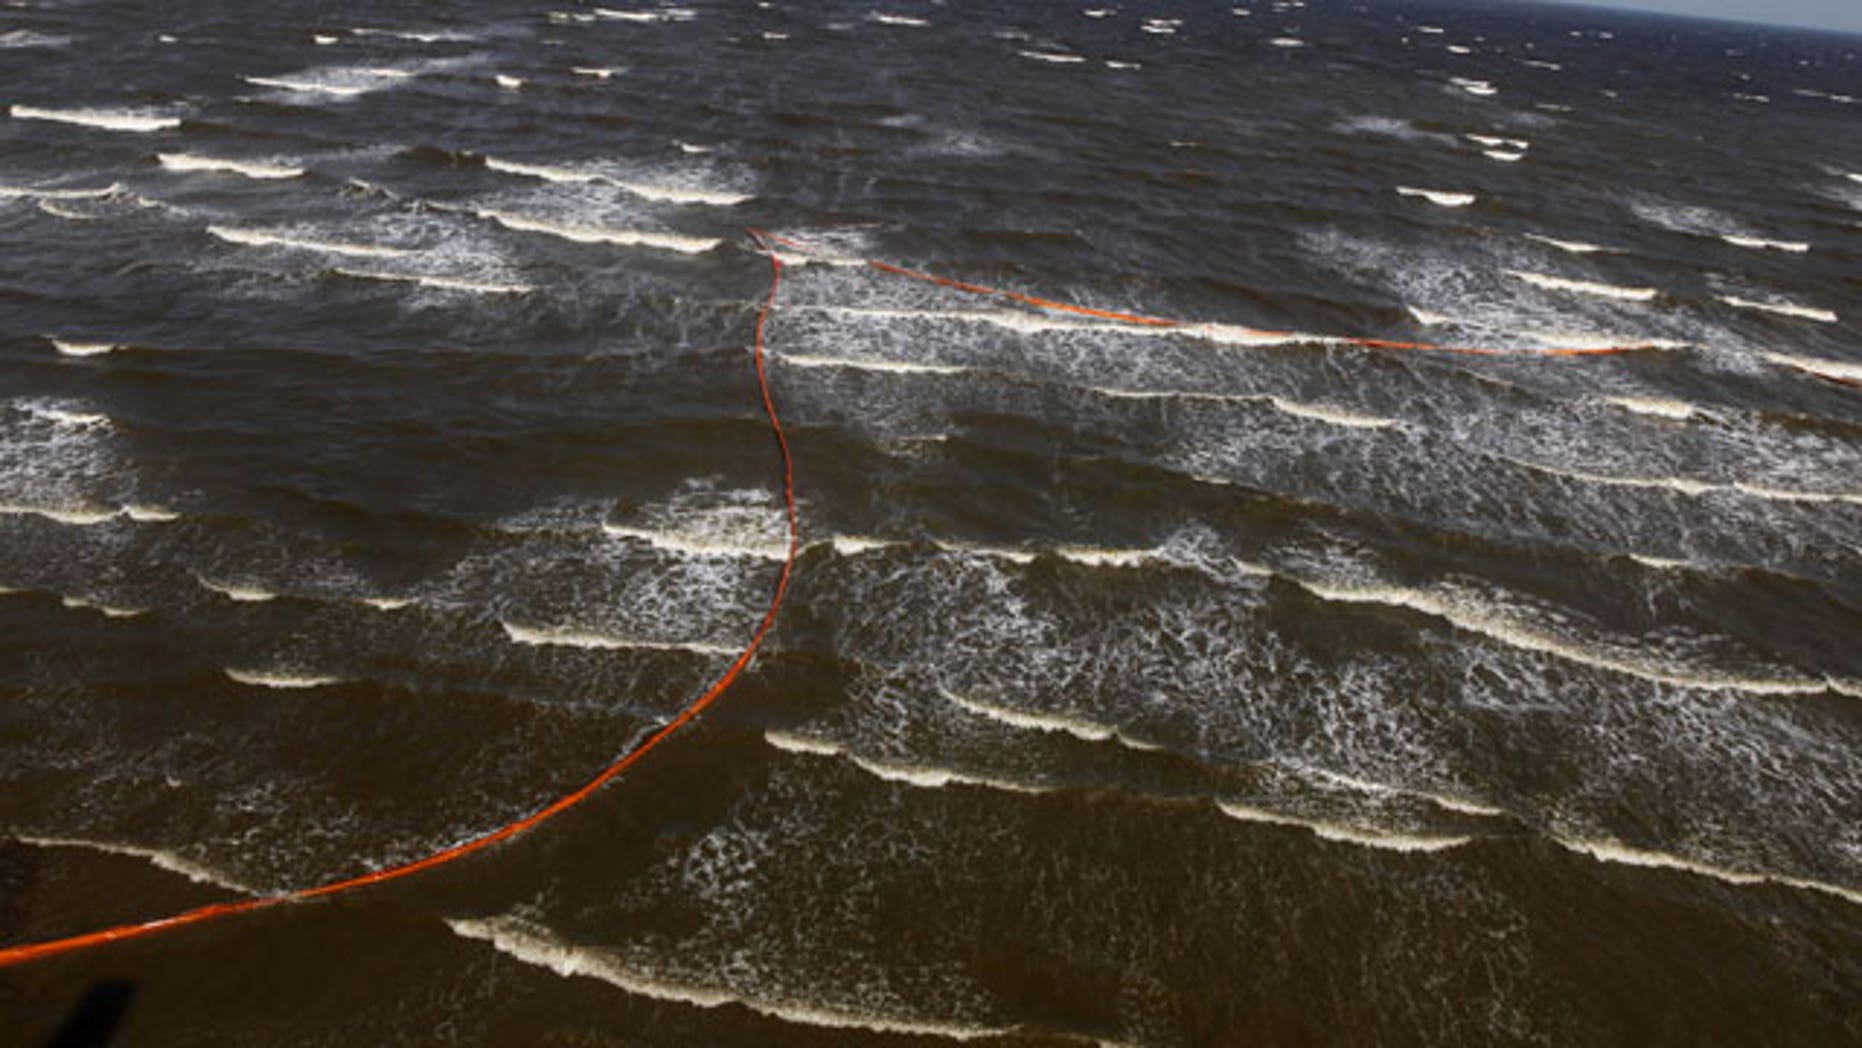 April 29: Oil booms that were placed in preparation of the looming oil spill from last week's collapse and spill of the Deepwater Horizon oil rig are seen strewn along the shoreline from choppy seas in Port Eads, La.